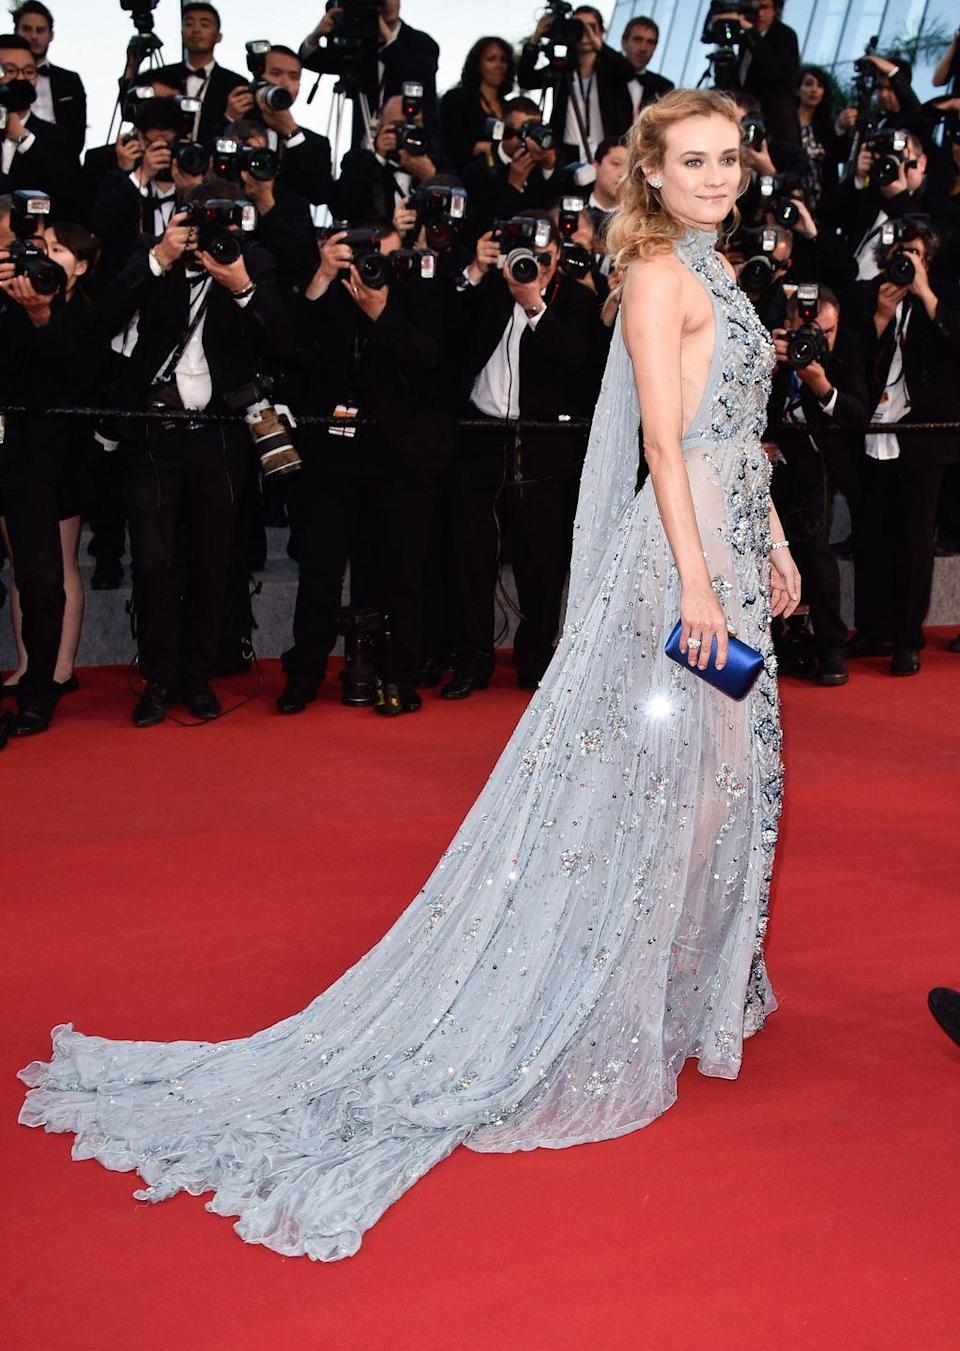 <p>The icy-blue dress with a fluttery train and crystal details that Diane Kruger wore to the 2015 Cannes Film Festival makes her look a lot like the Snow Queen.</p>